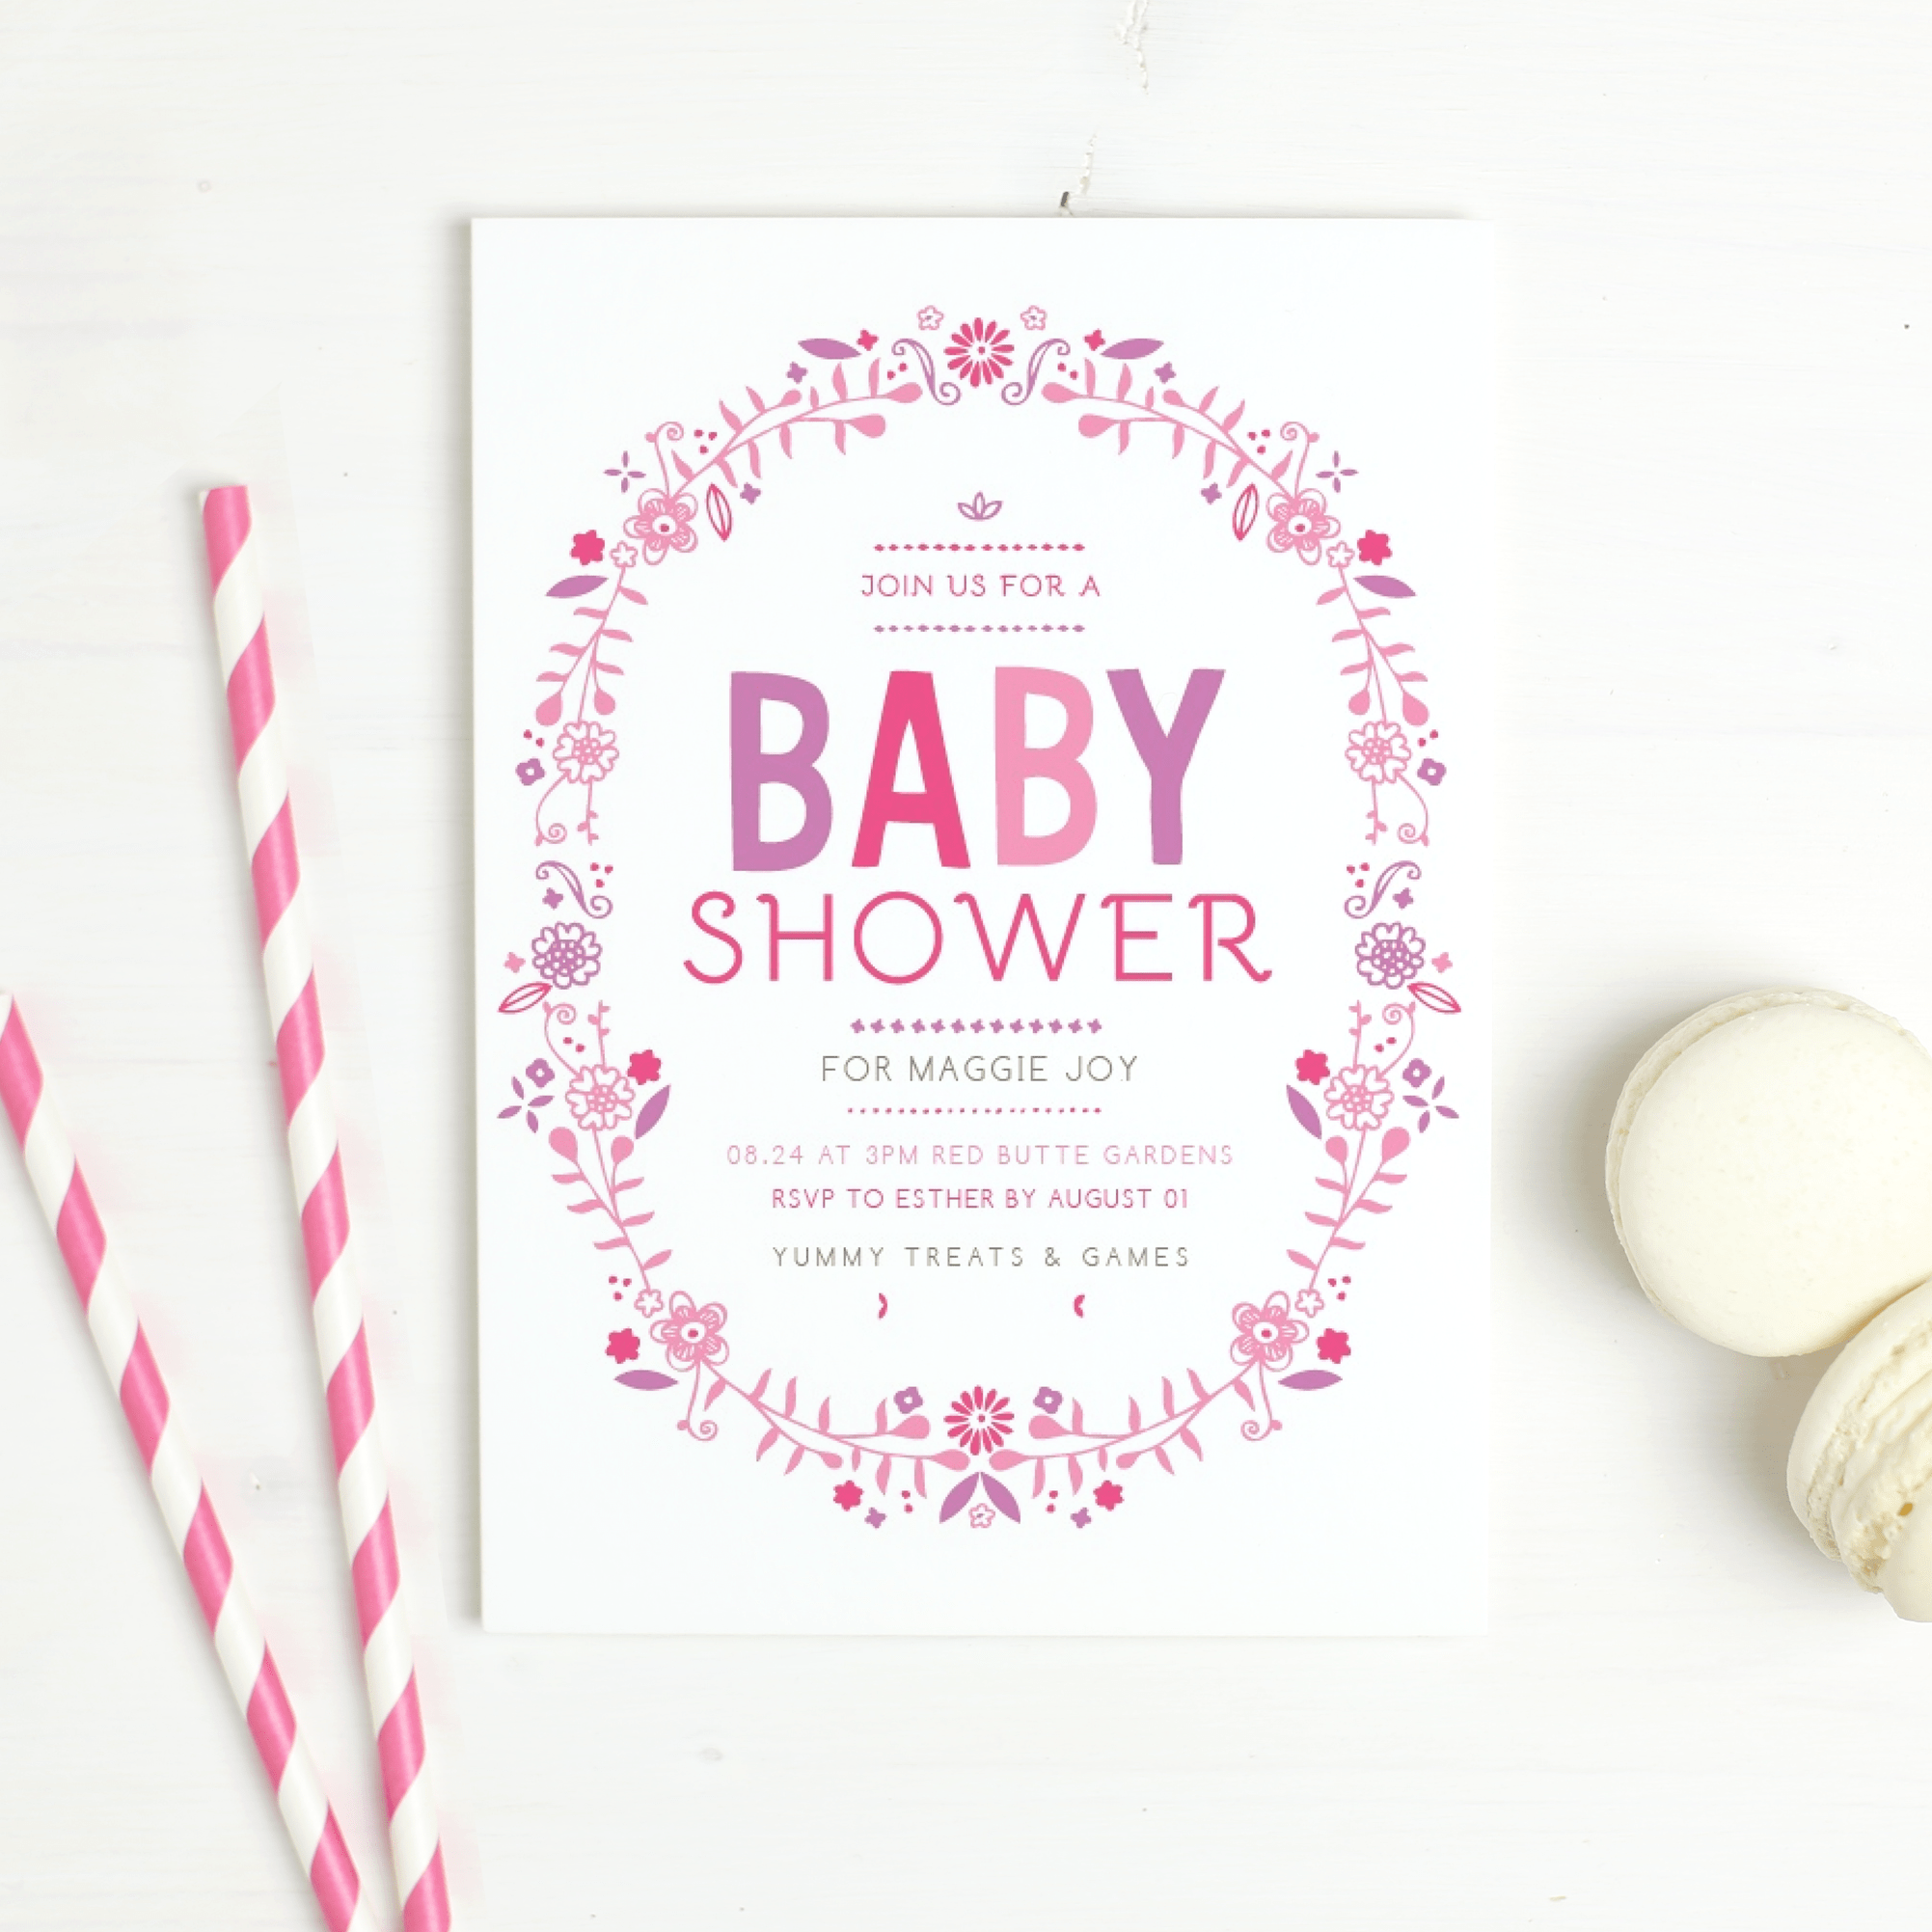 Fun Baby Shower Invitation Ideas from Basic Invite (Plus Free Printables)